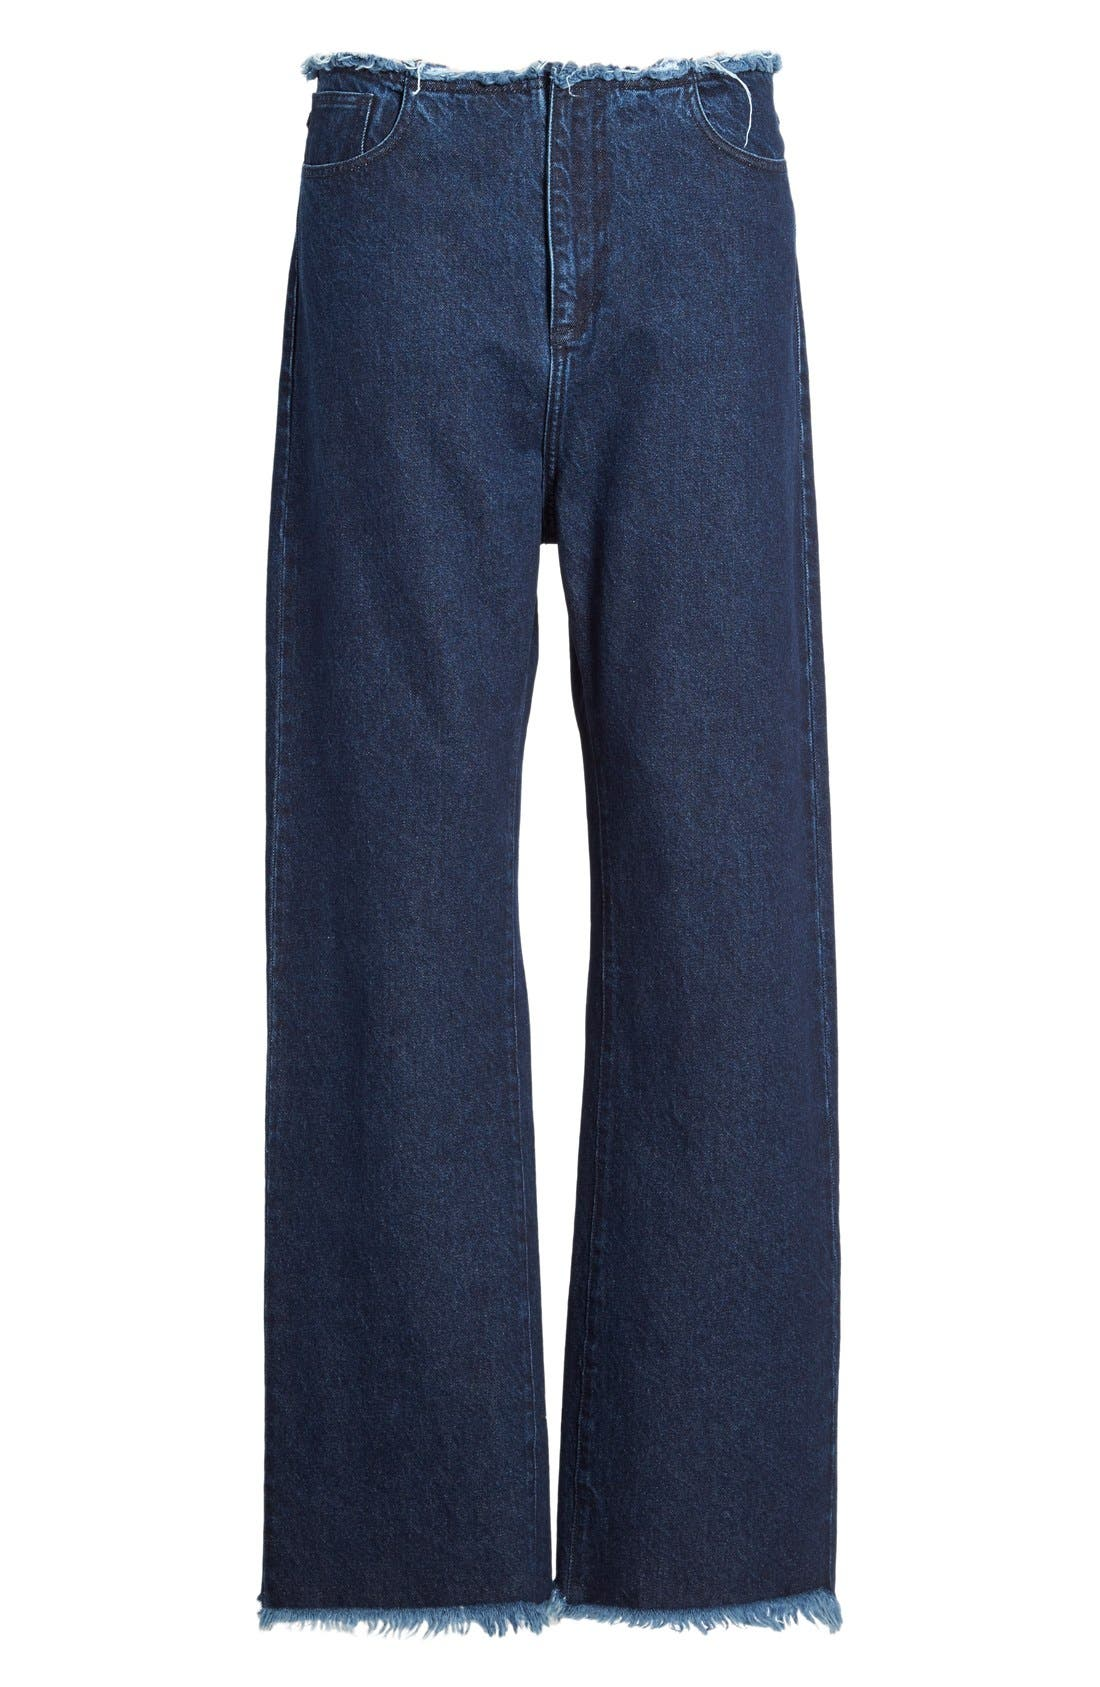 Alternate Image 4  - Marques'Almeida Relaxed Boyfriend Jeans